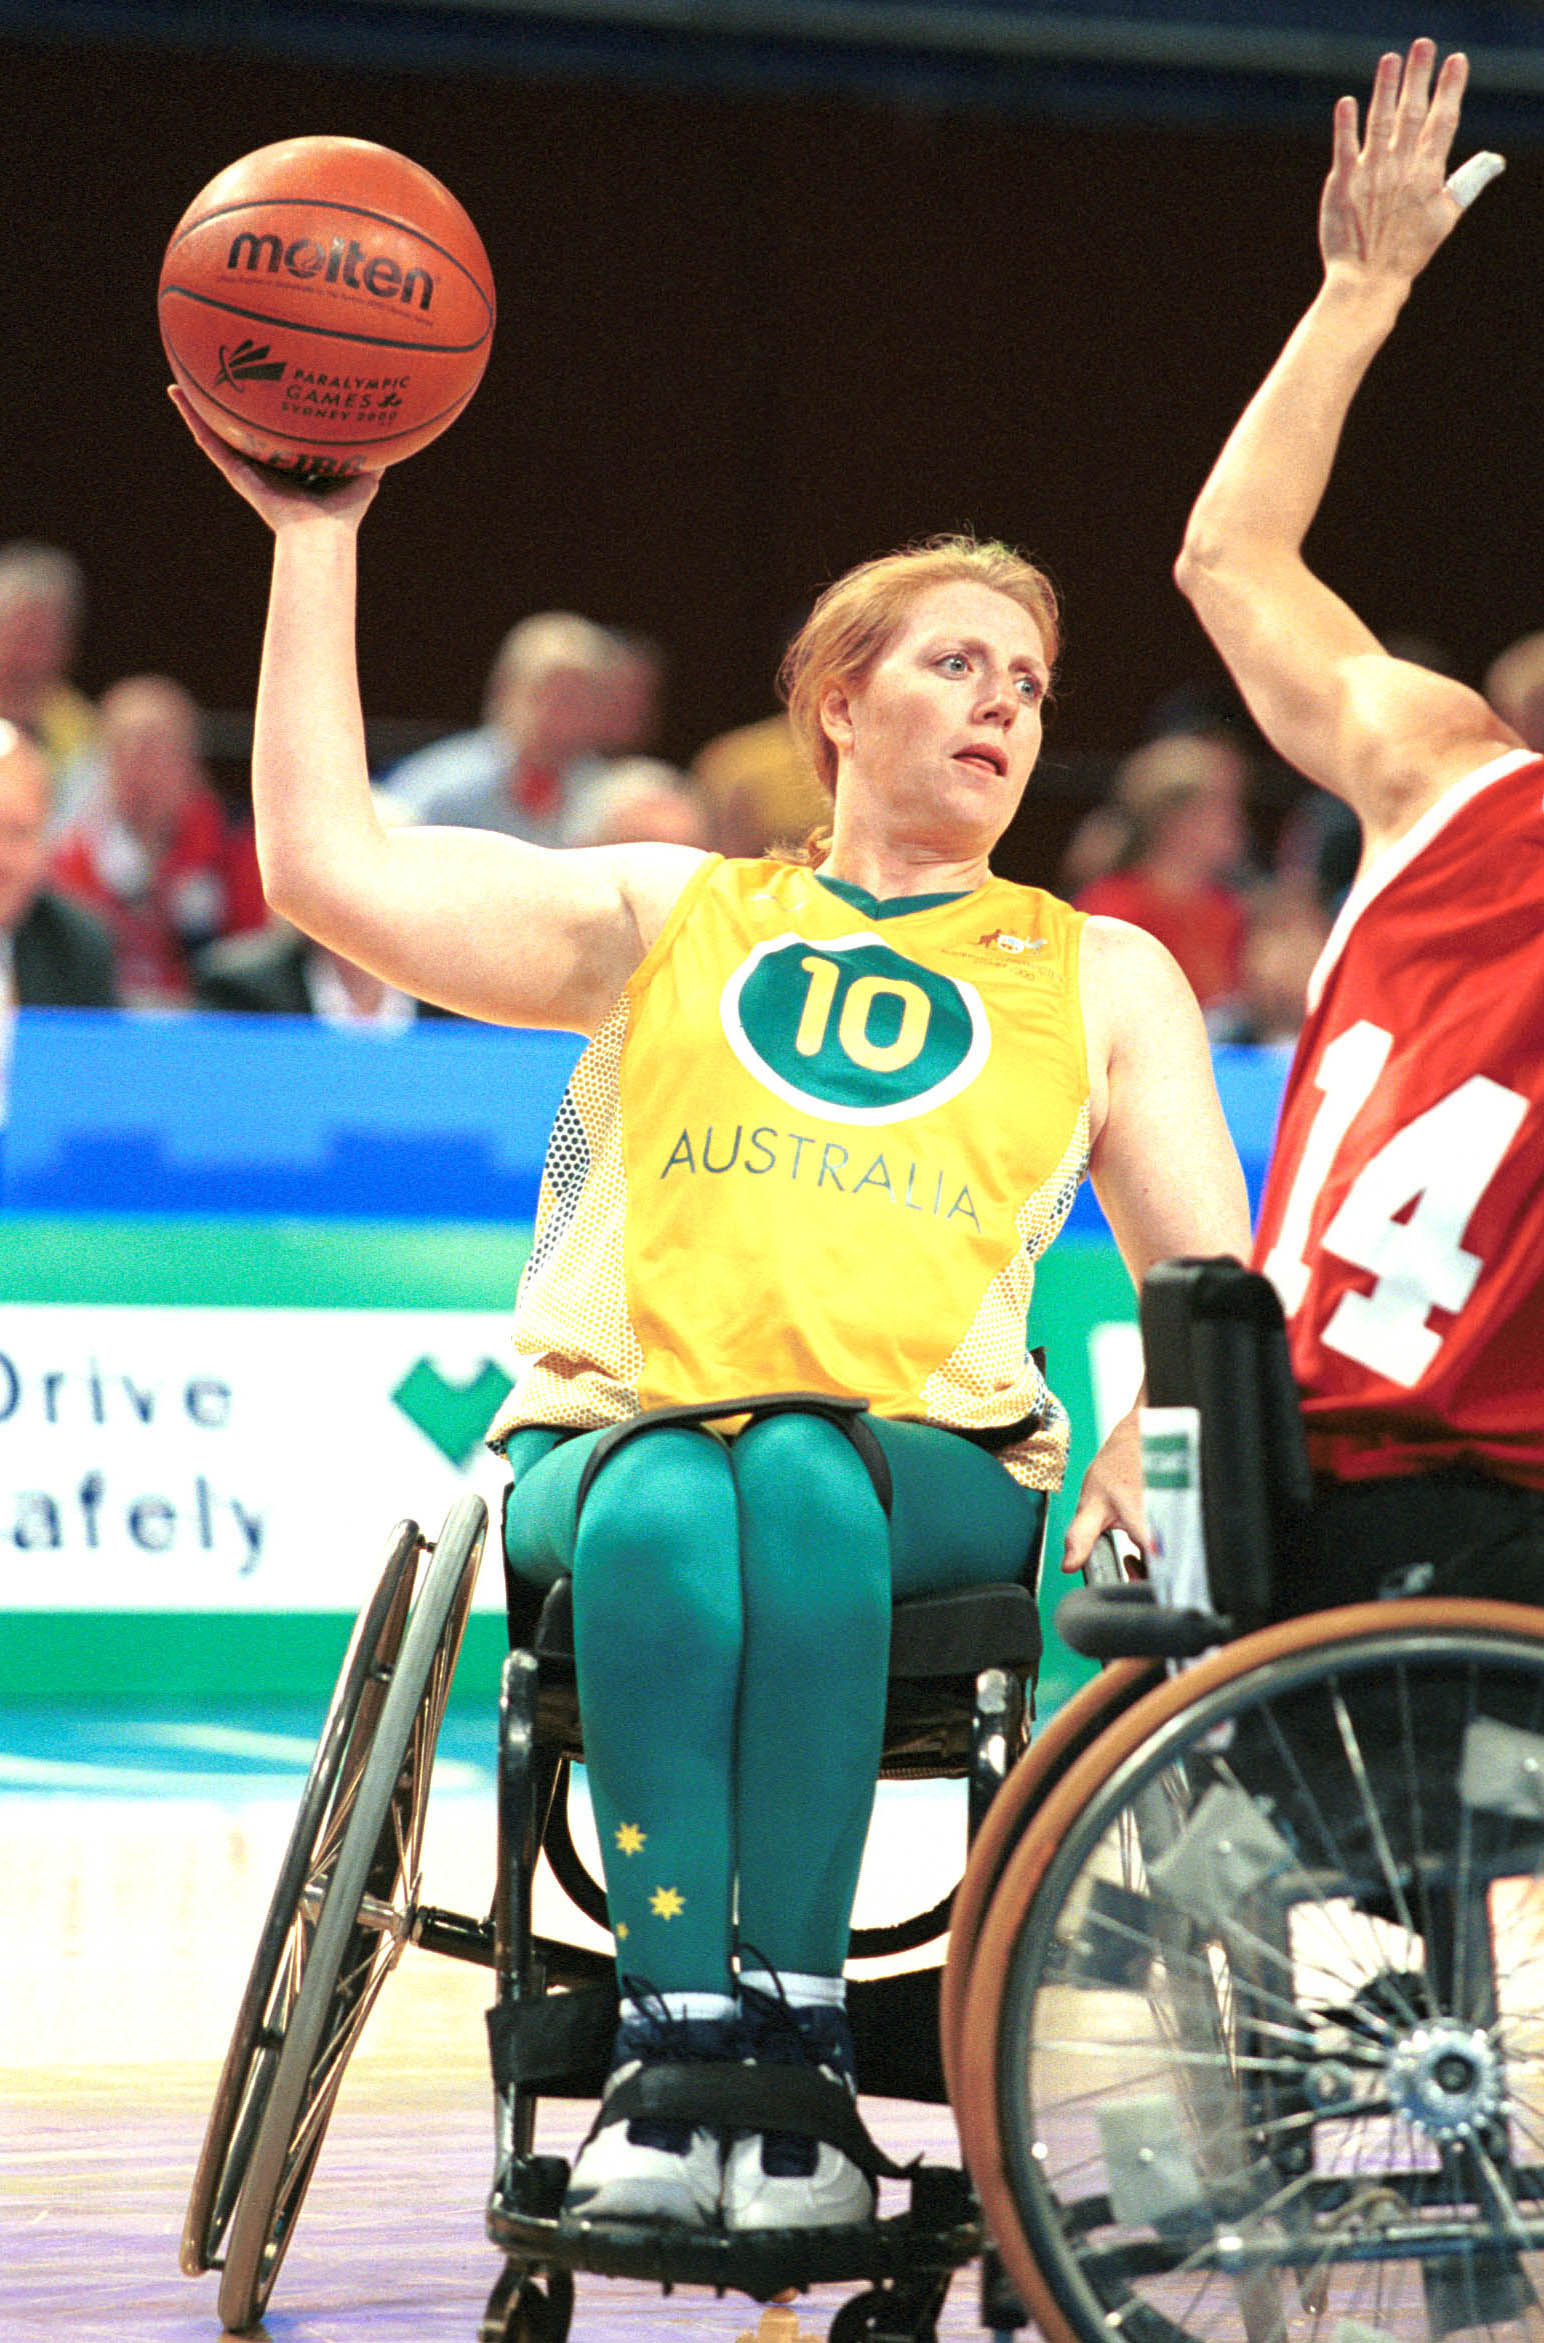 Australian wheelchair basketballer Jane Webb (now Sachs) passes the ball during 2000 Sydney Paralympic Games match